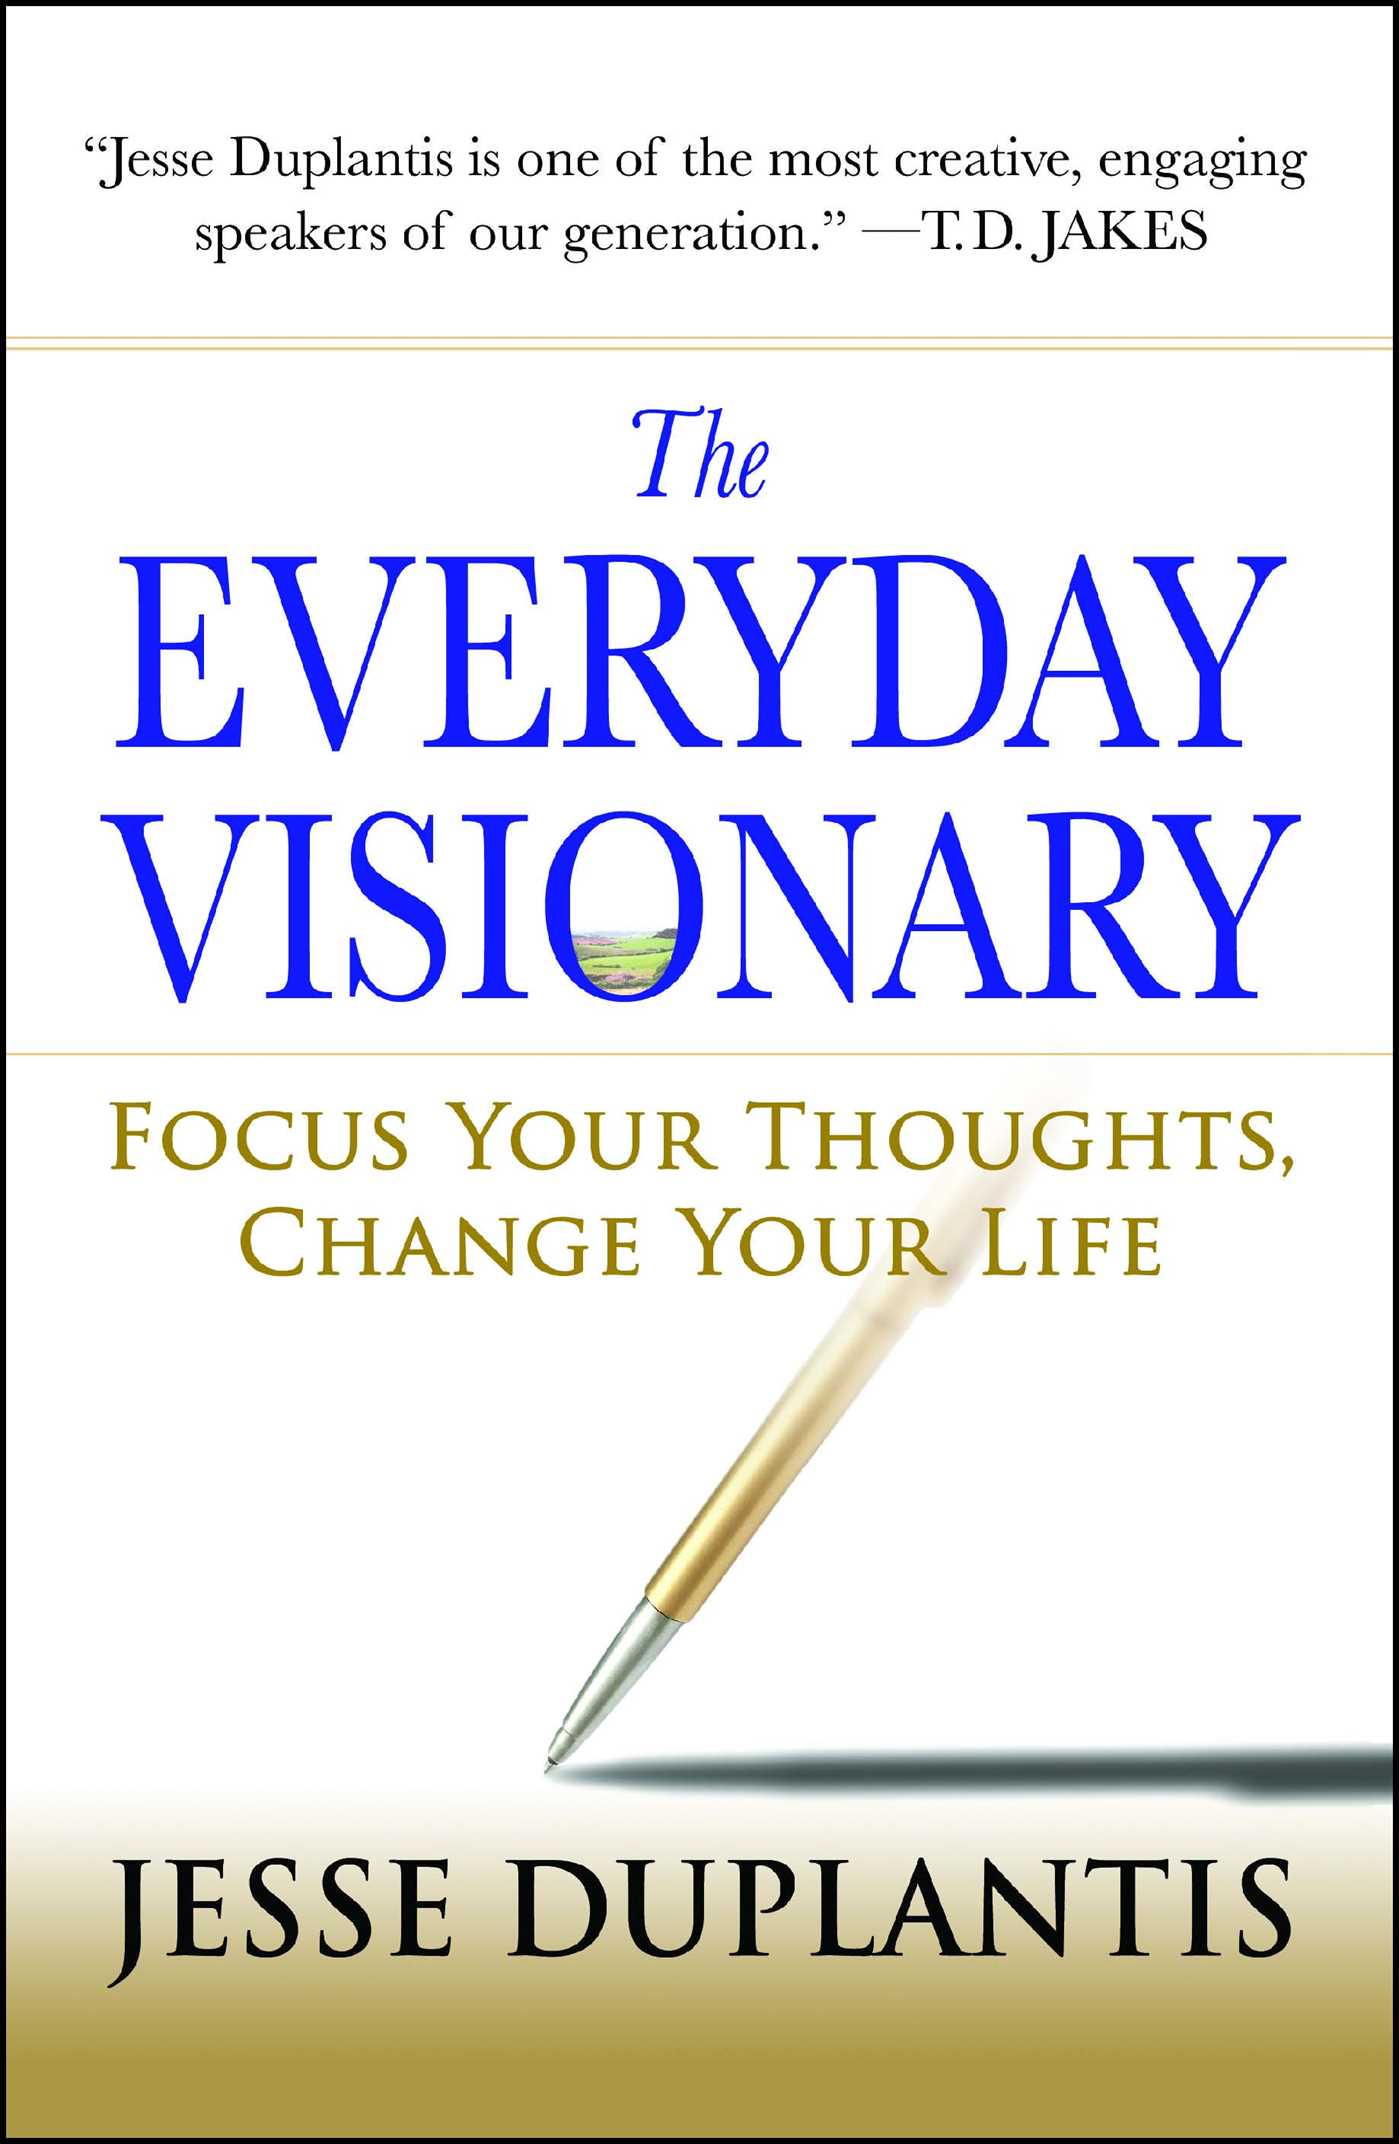 The everyday visionary 9781416549772 hr